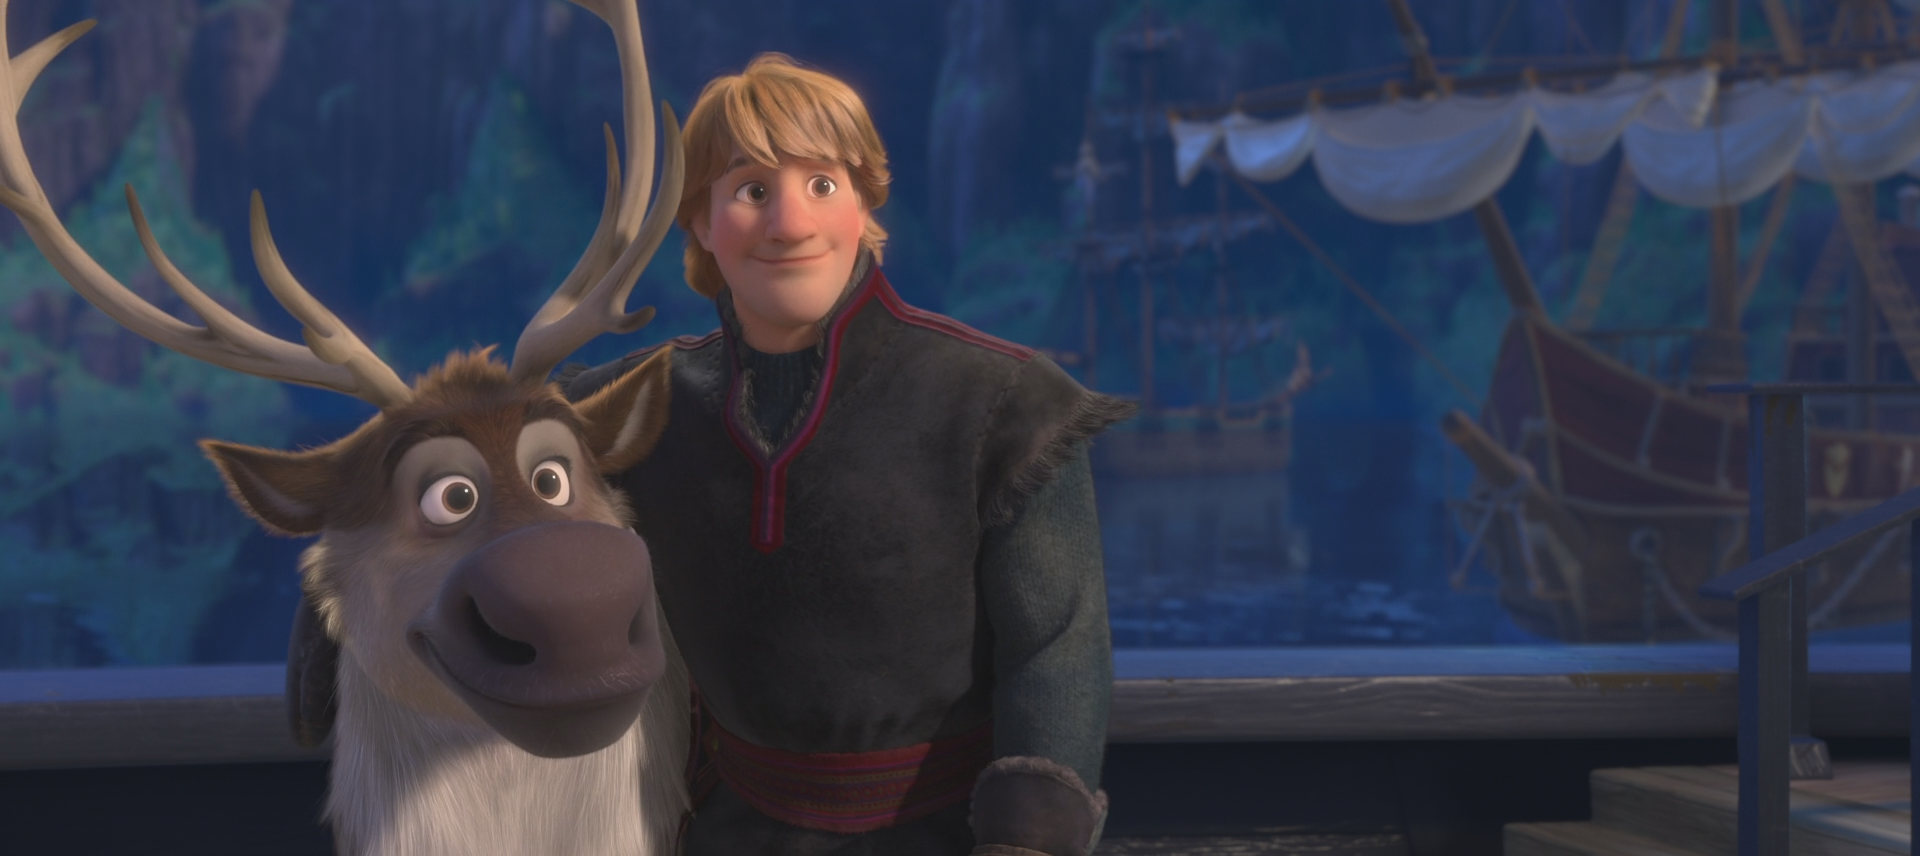 kristoff wiki once upon a time fandom powered by wikia